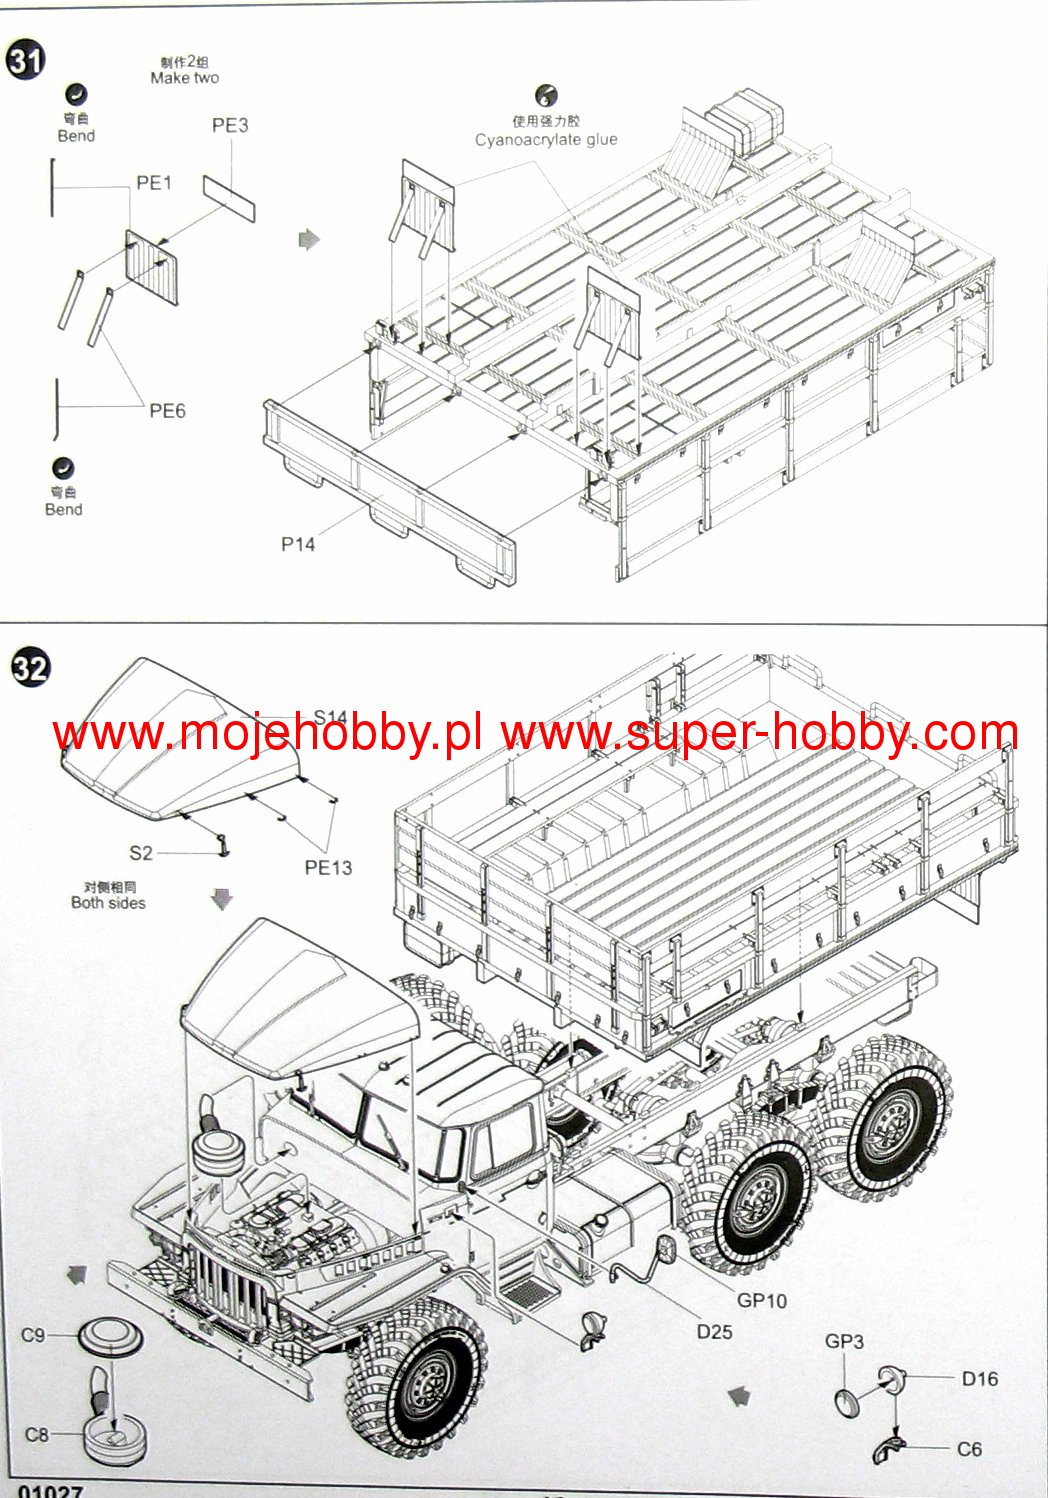 Russian Ural 375d Trumpeter 01027 Engine Diagram 2 Tru01027 8 9